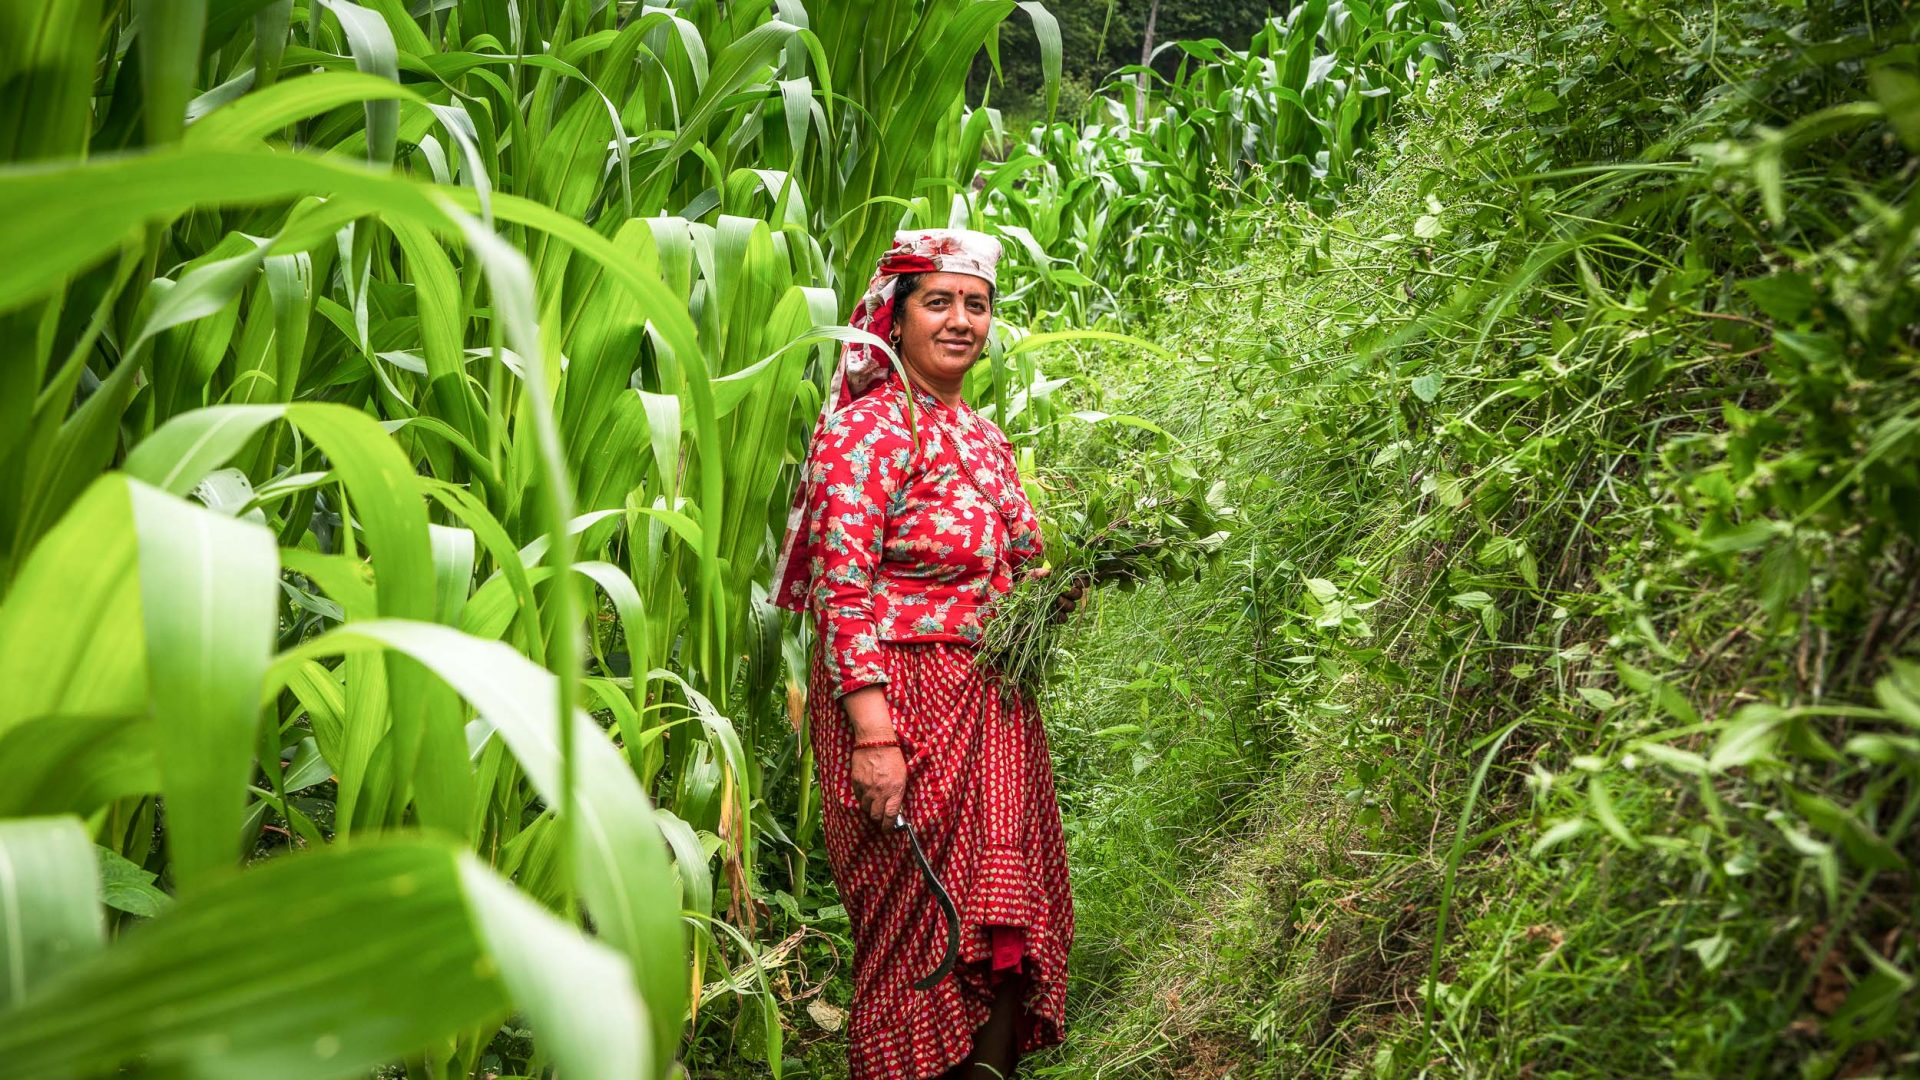 Where women rule: The Nepali foothill community of Panauti